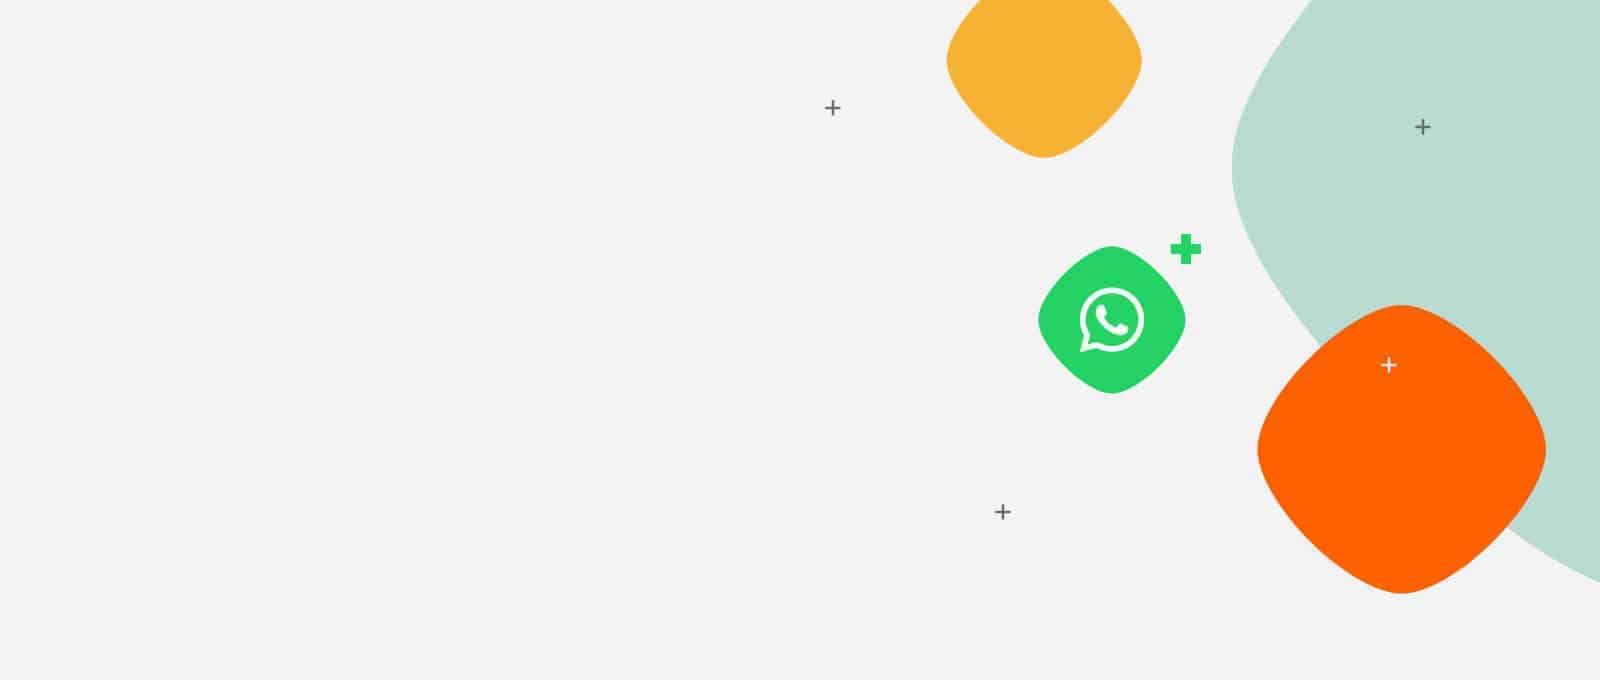 How to generate new contacts on WhatsApp